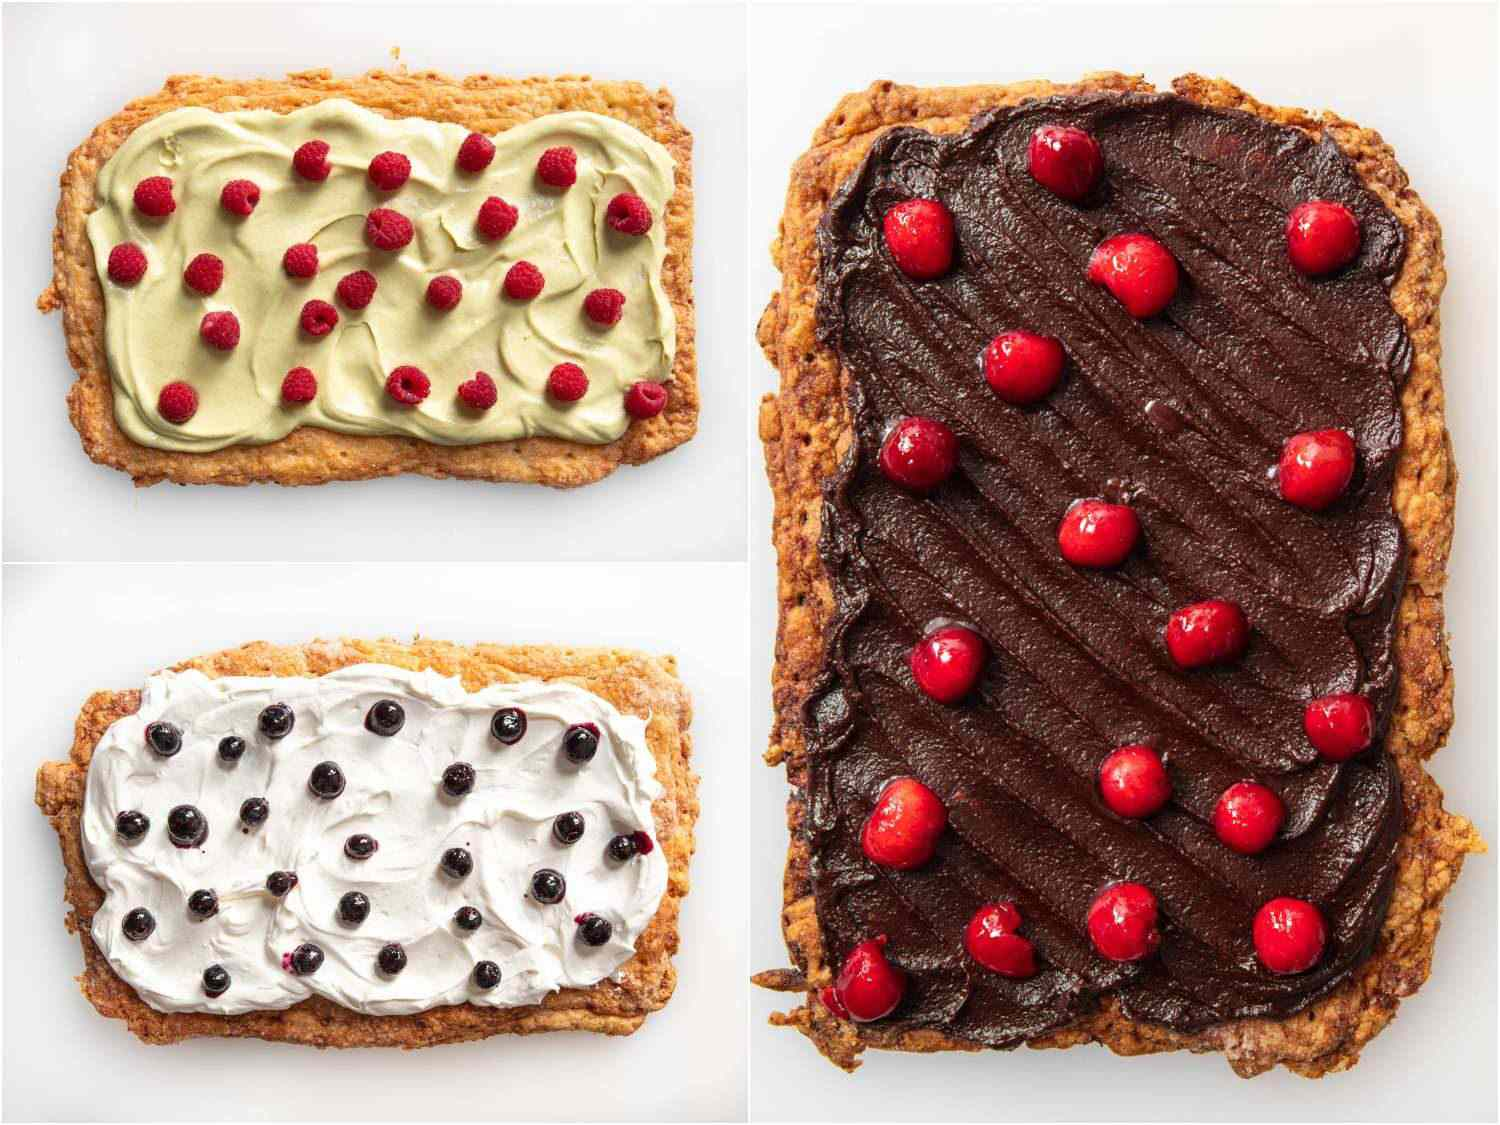 topping the tarts with fresh raspberries, blueberries, and cherries